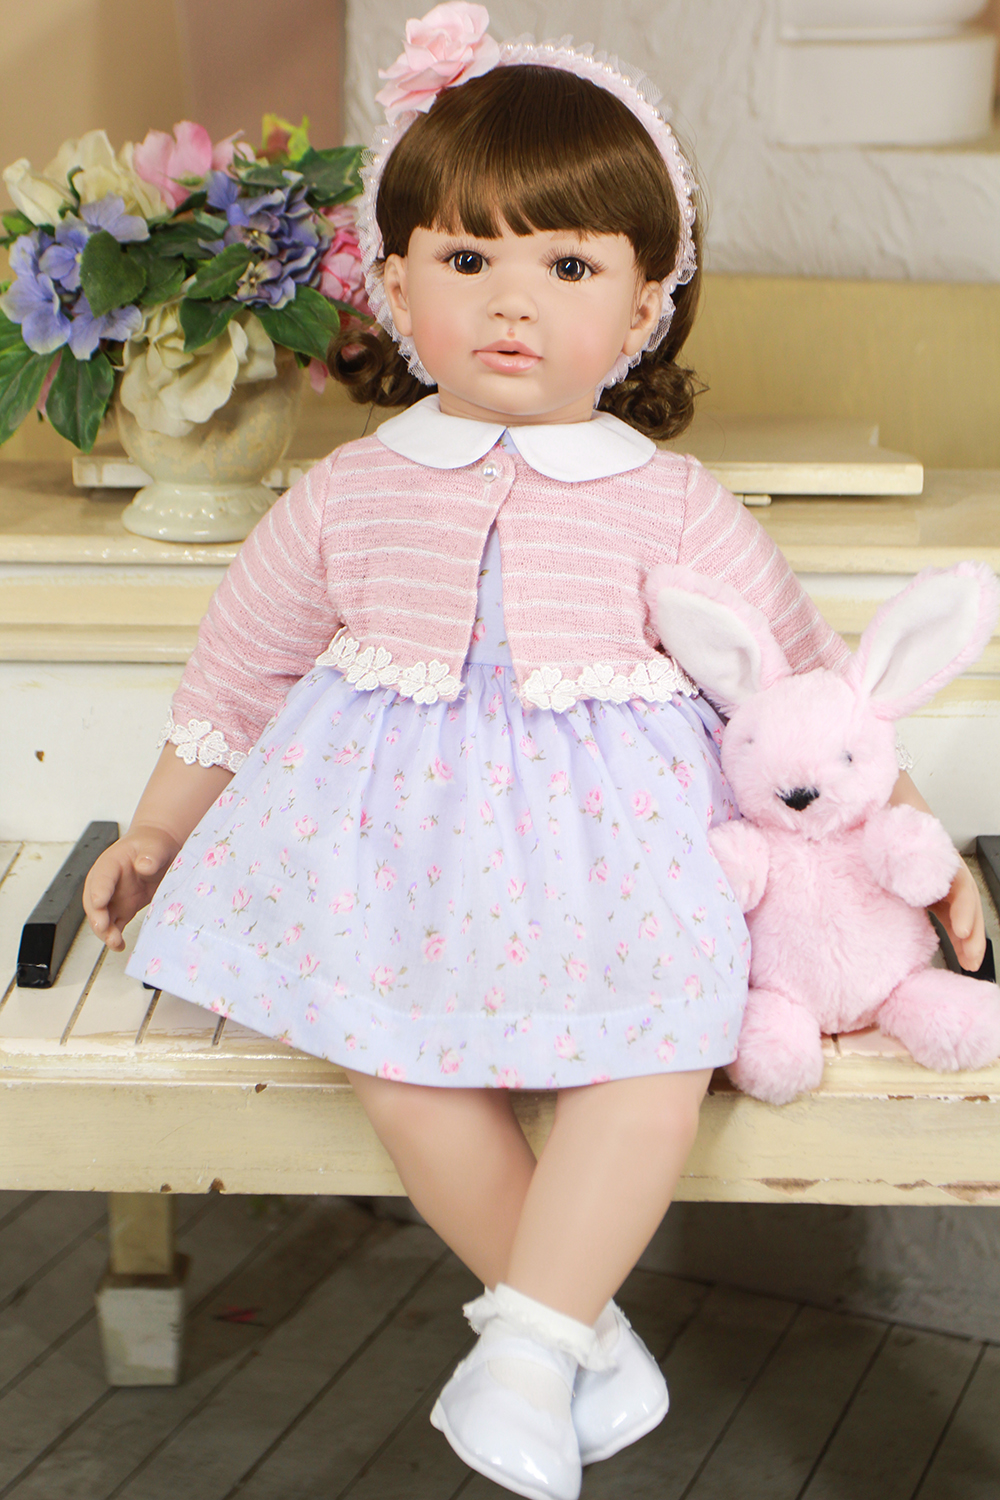 Short Curly Hair Doll Silicone Reborn Baby Girl Doll Lifelike Toddler Princess Girl Doll Toys for Sale Girls Best Birthday Gifts